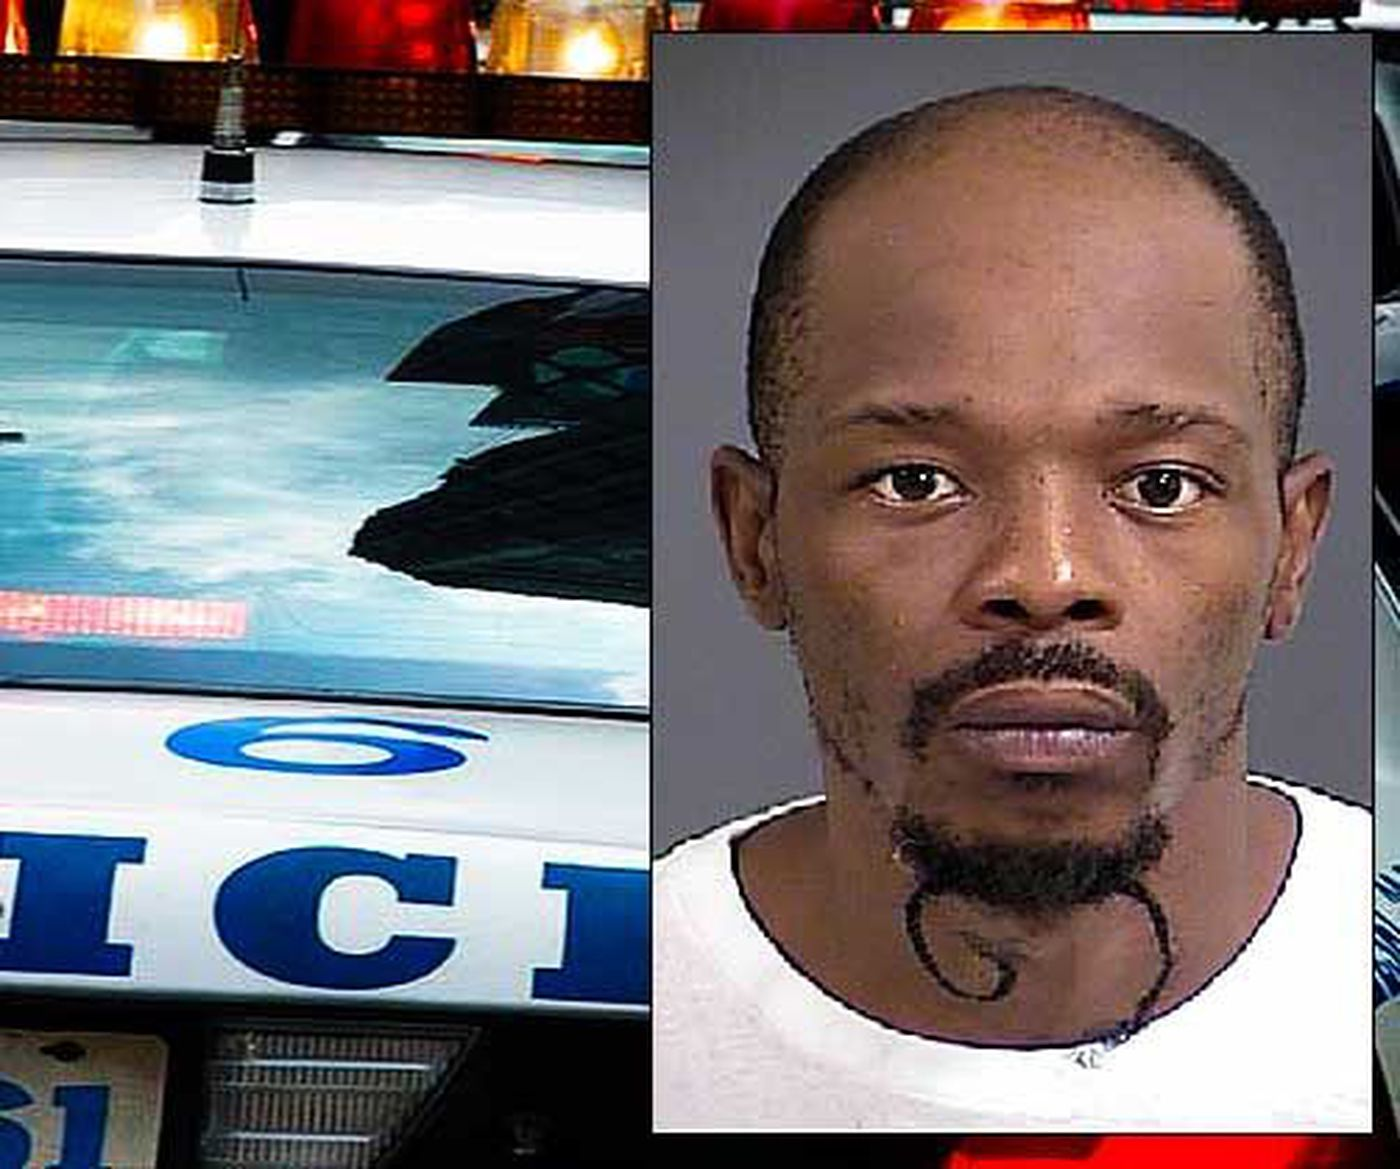 Search warrant leads to drug dealing charges for downtown man